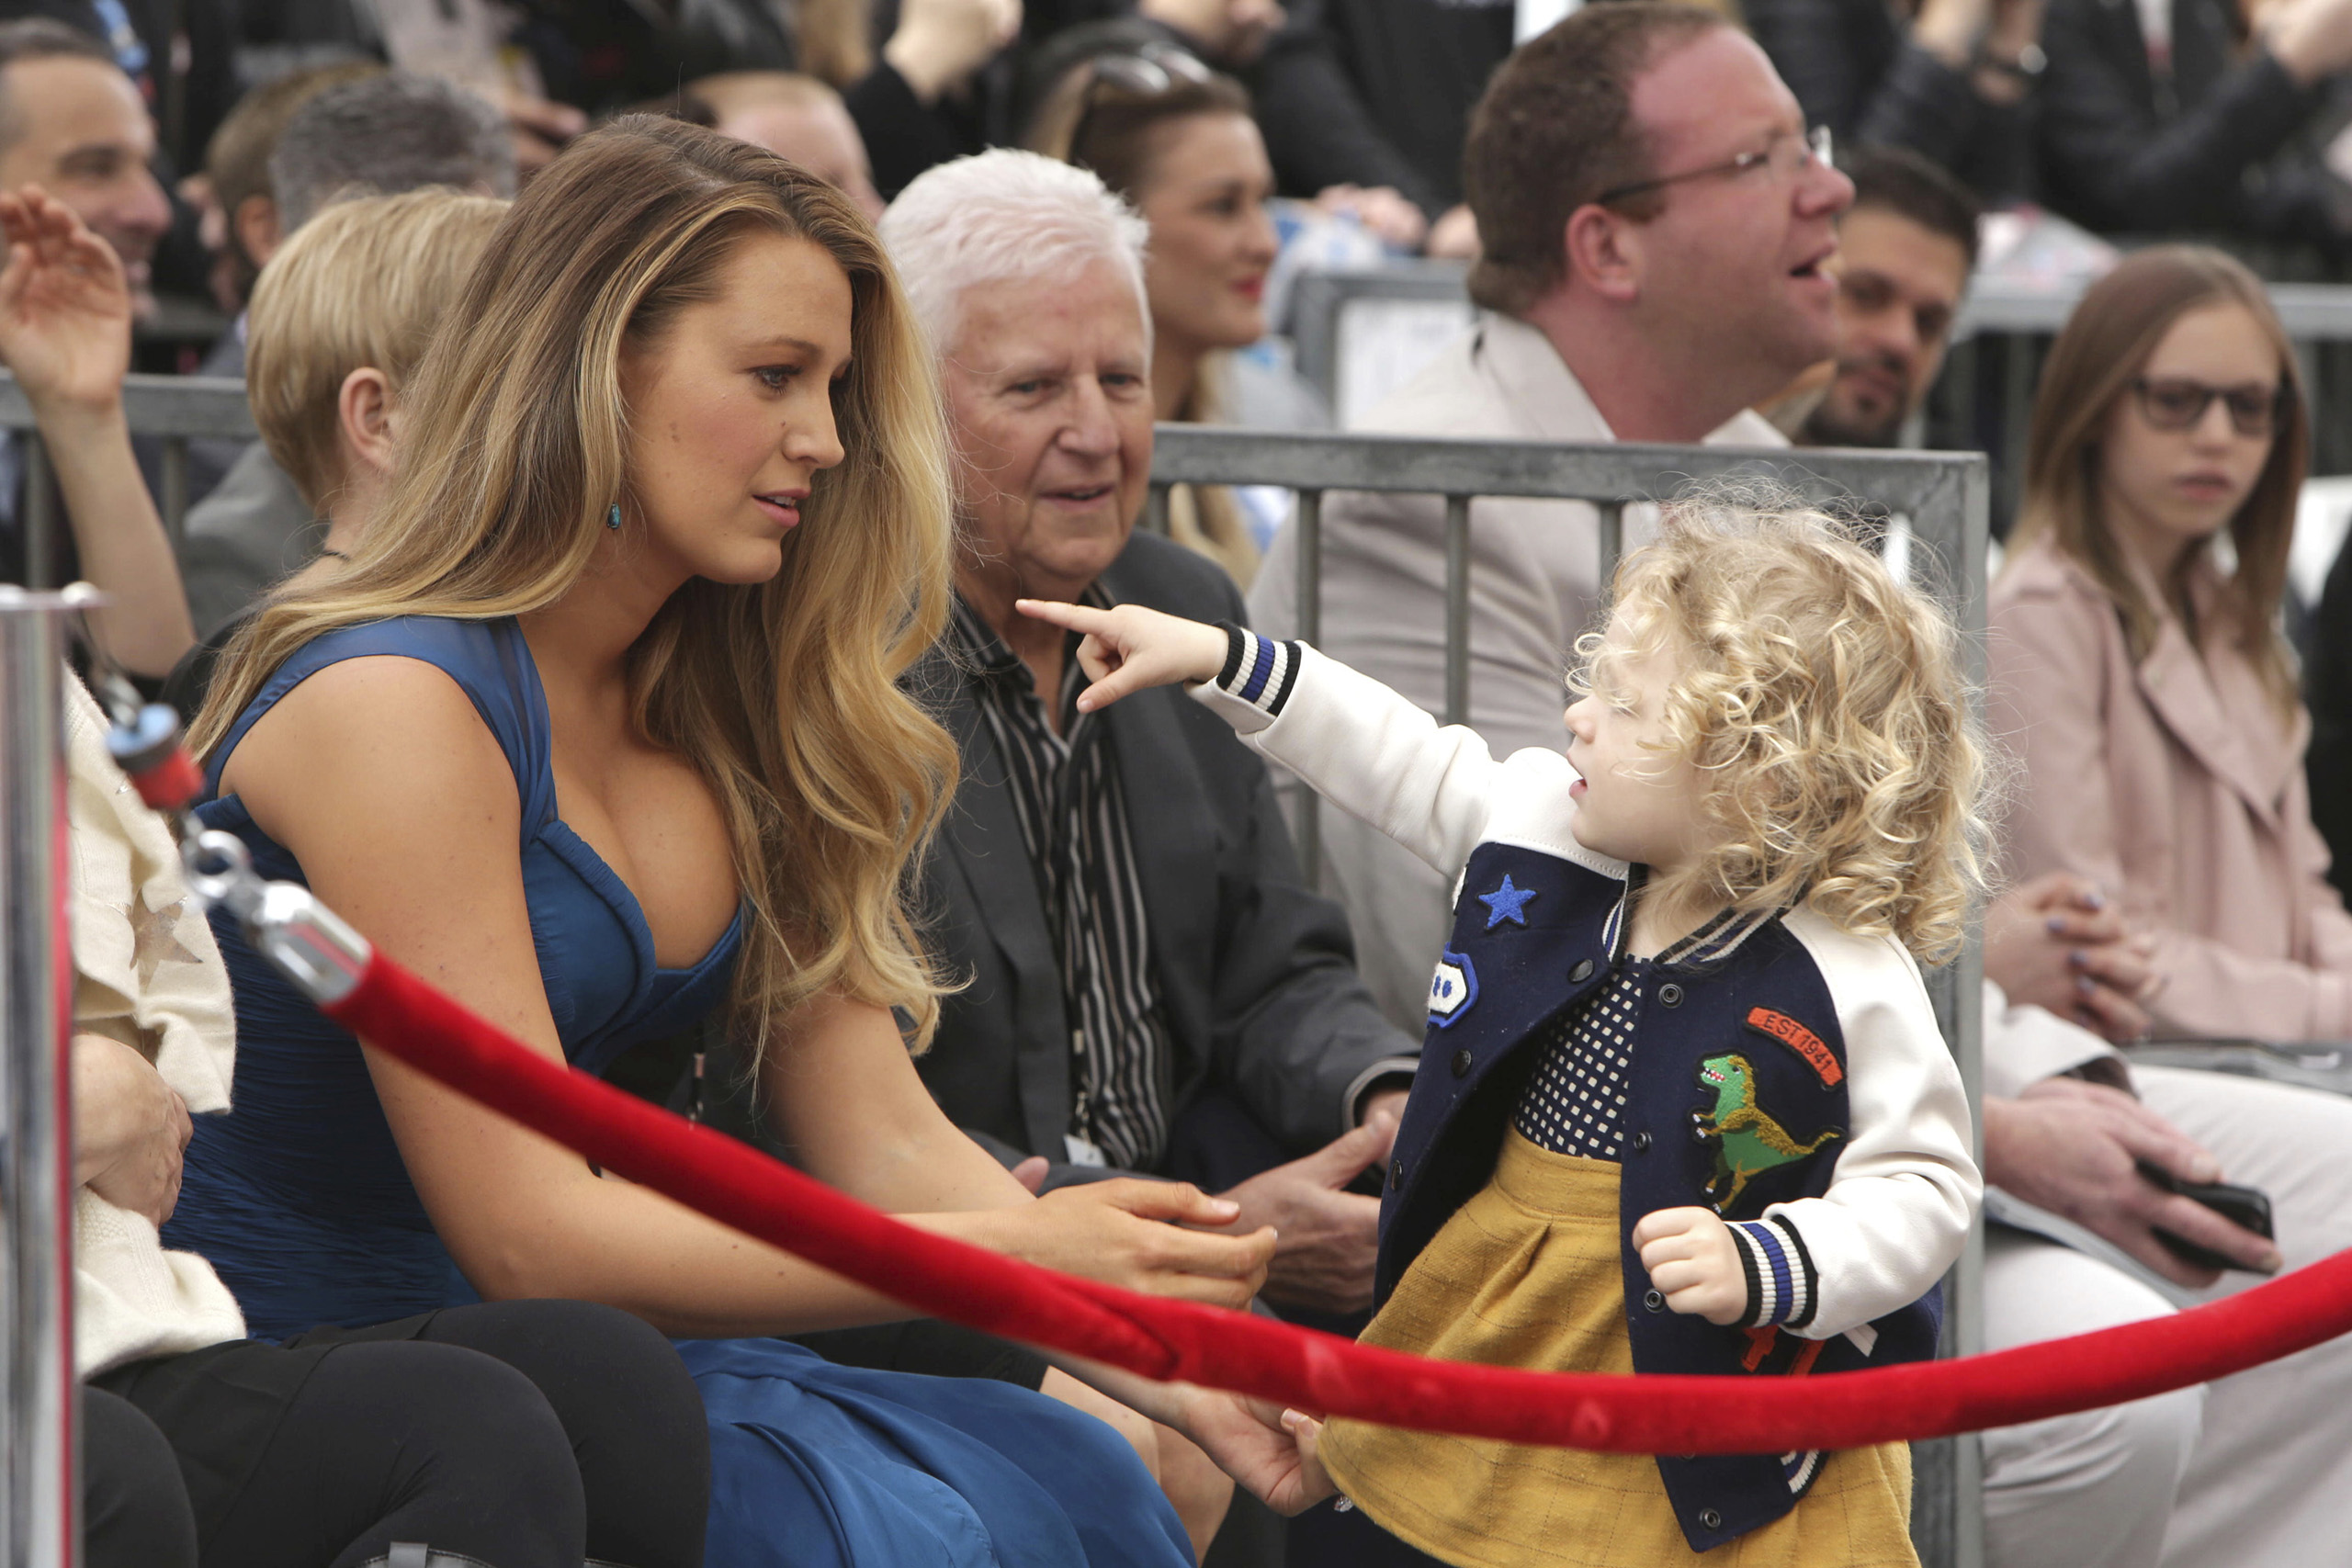 Blake Lively and her daughter James Reynolds seen at Ryan Reynolds Honored with Star on the Hollywood Walk of Fame in Los Angeles, on Dec. 15, 2016. (Photo by Eric Charbonneau/Invision for Twentieth Century Fox/AP Images)